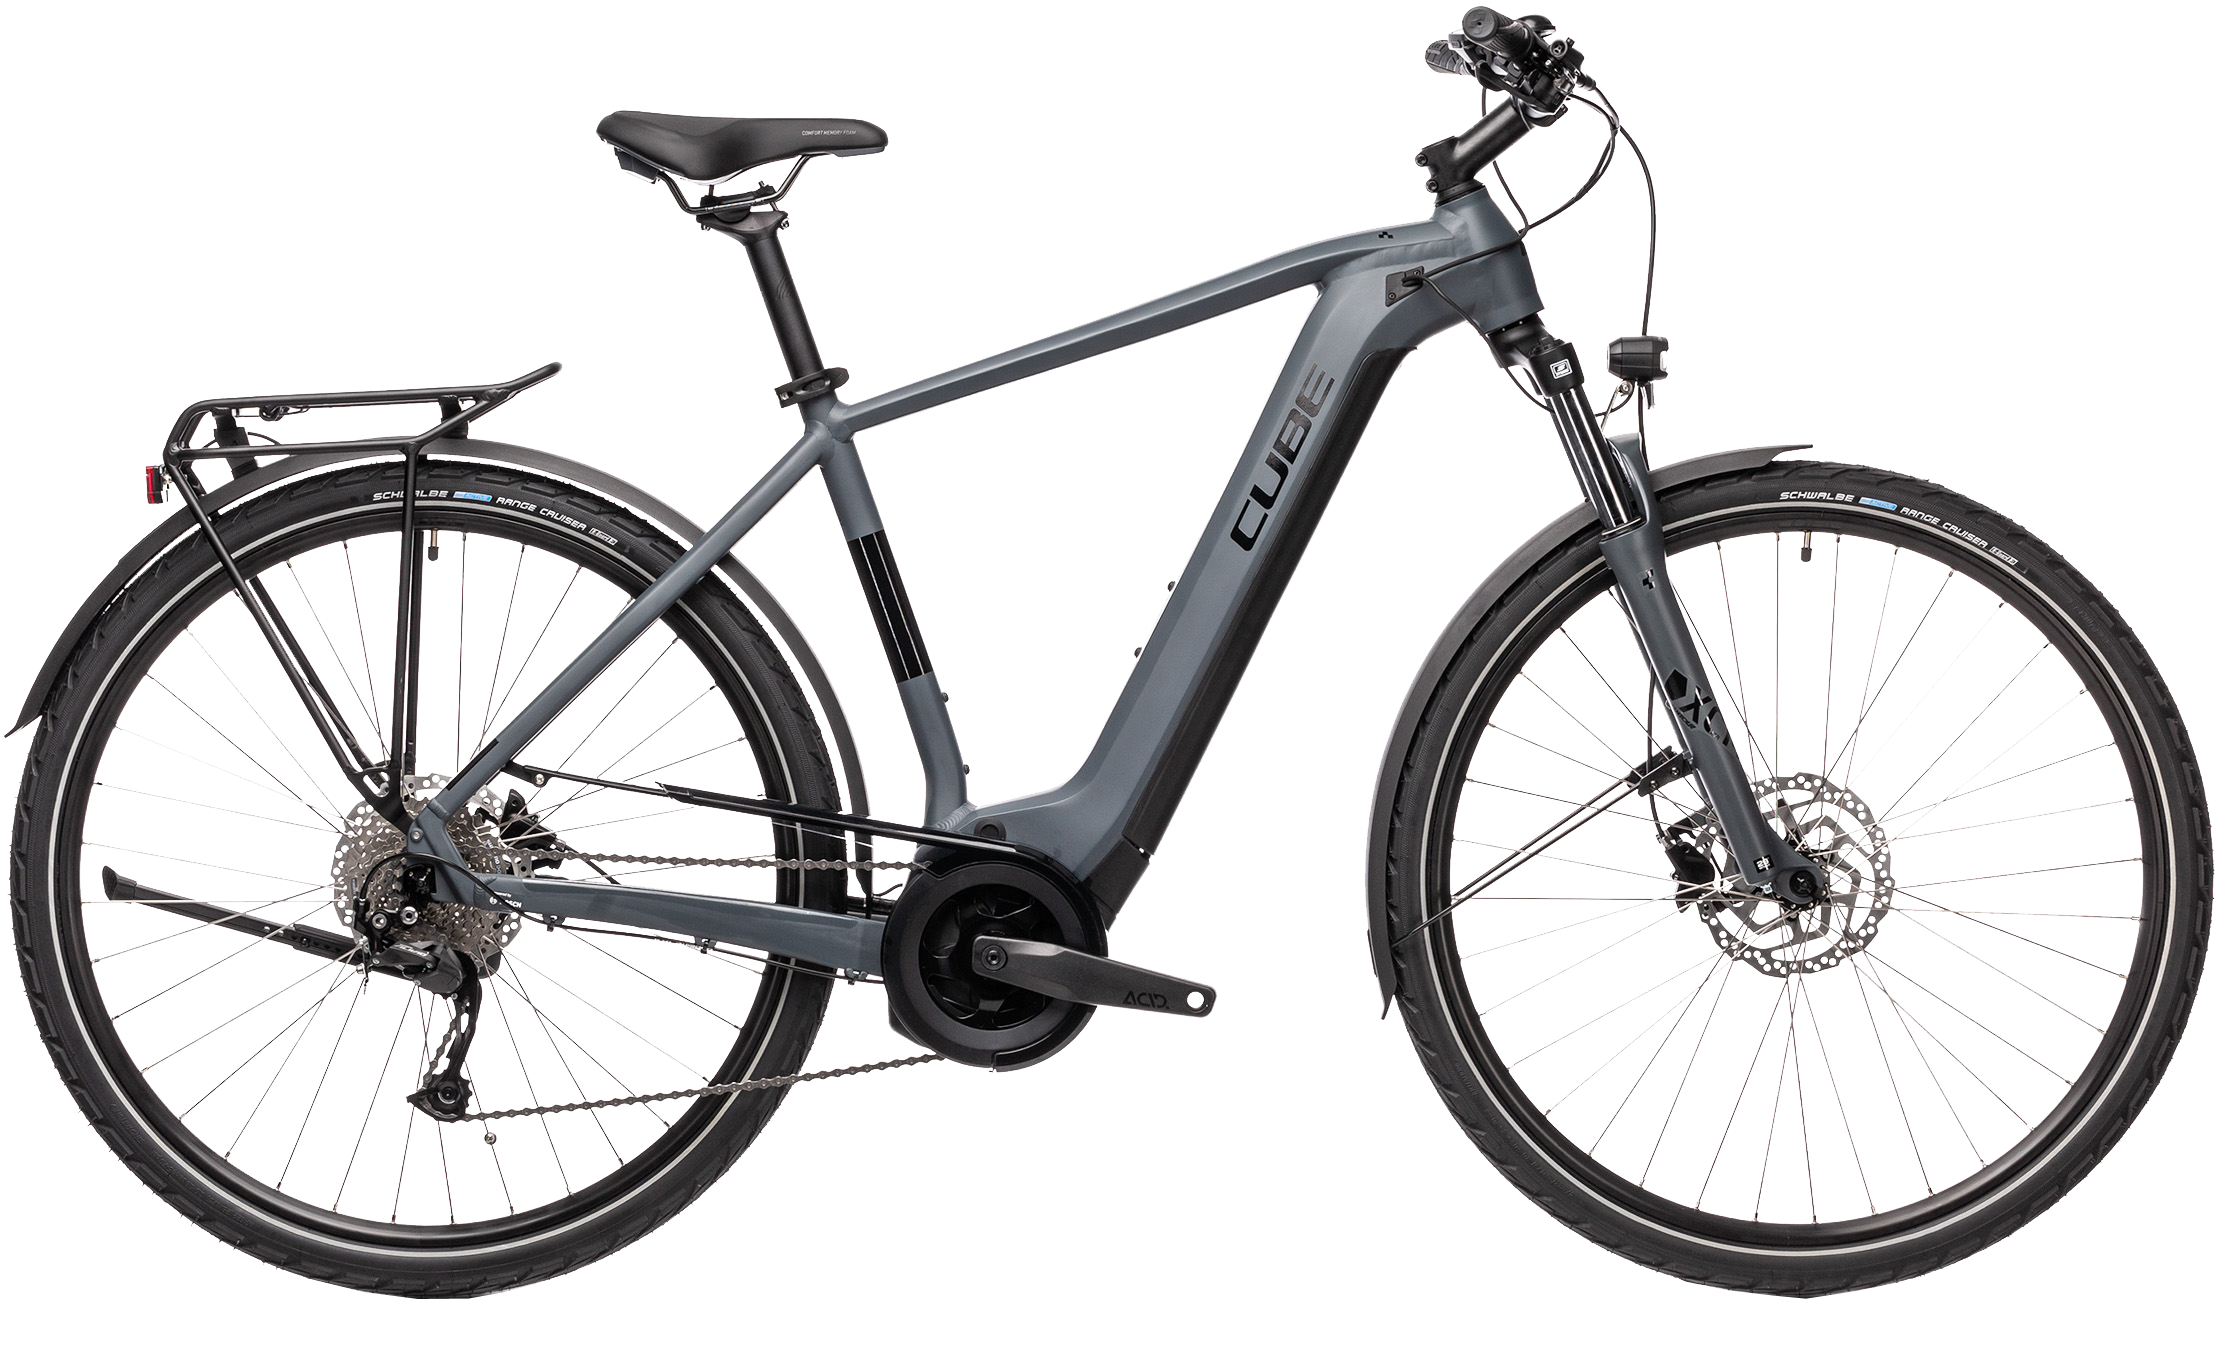 https://w8w5m3f8.stackpathcdn.com/20263/vtc-electrique-cube-touring-hybrid-one-400-500-625wh-cadre-homme.jpg